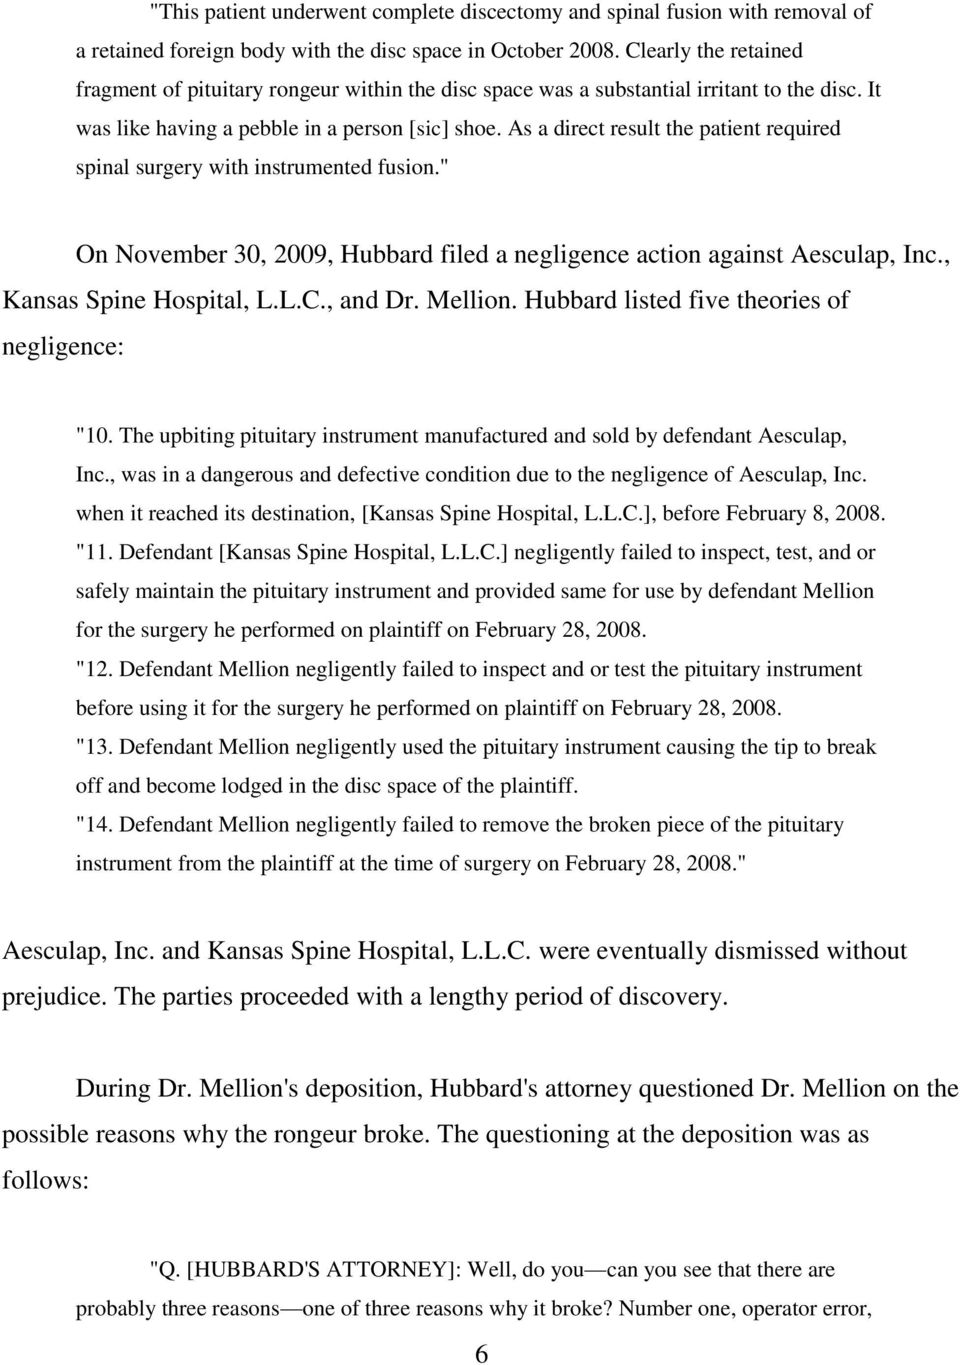 "As a direct result the patient required spinal surgery with instrumented fusion."" On November 30, 2009, Hubbard filed a negligence action against Aesculap, Inc., Kansas Spine Hospital, L.L.C., and Dr."